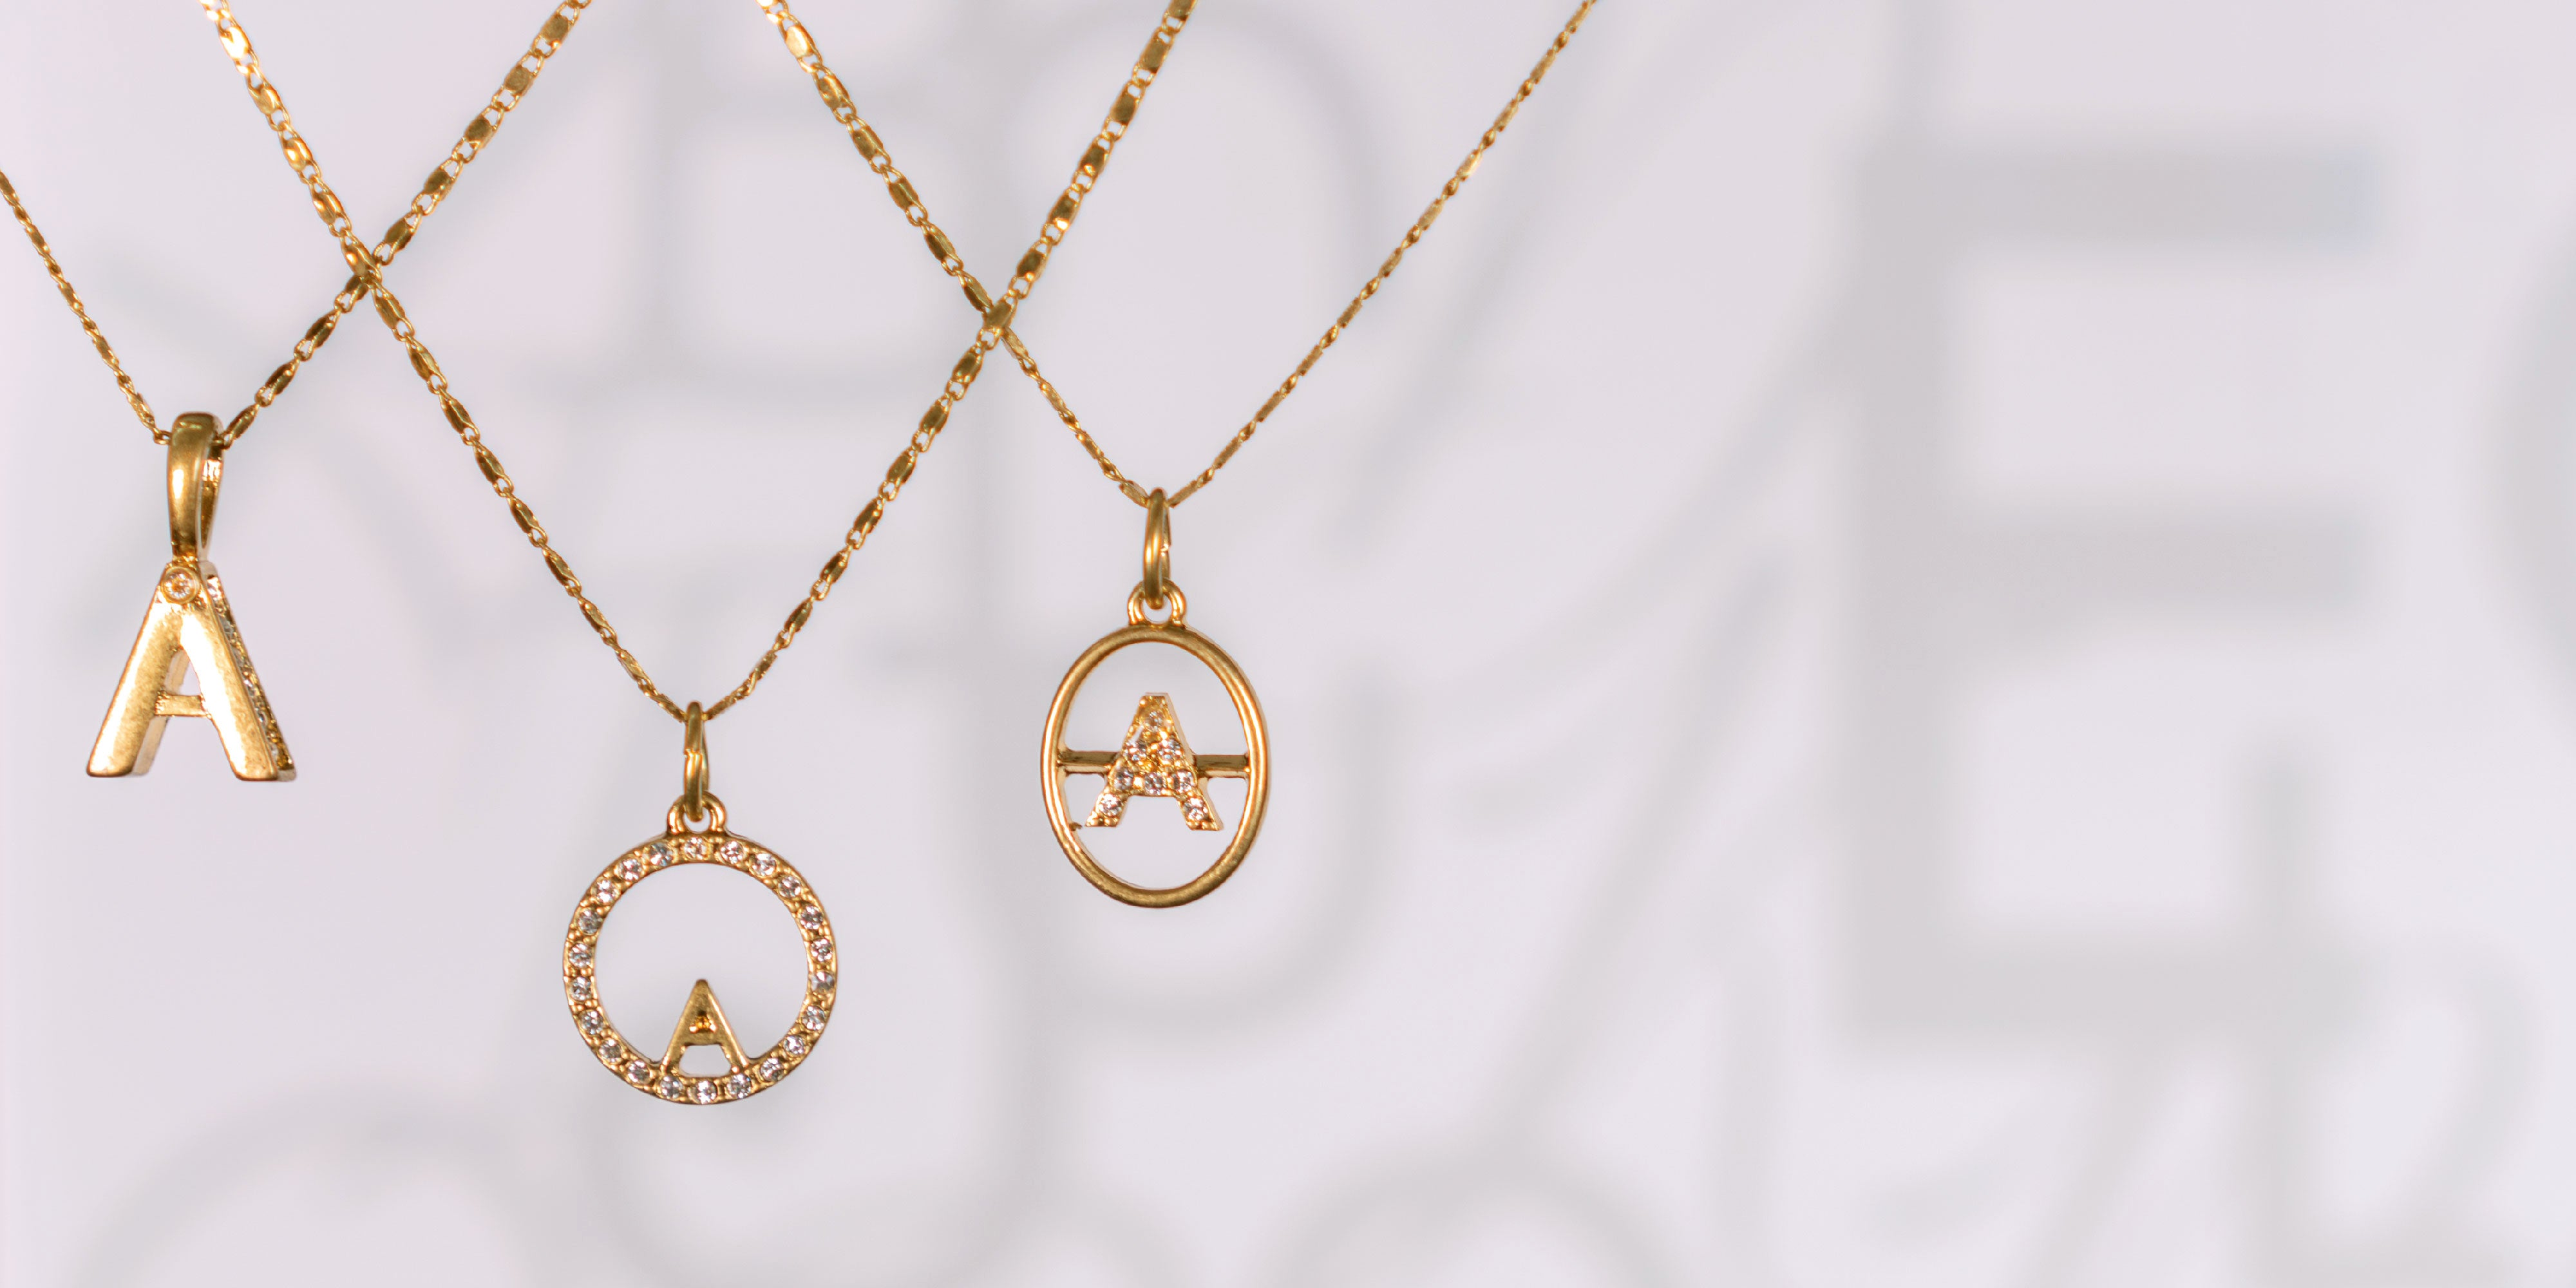 Initial Talisman Necklace Collection